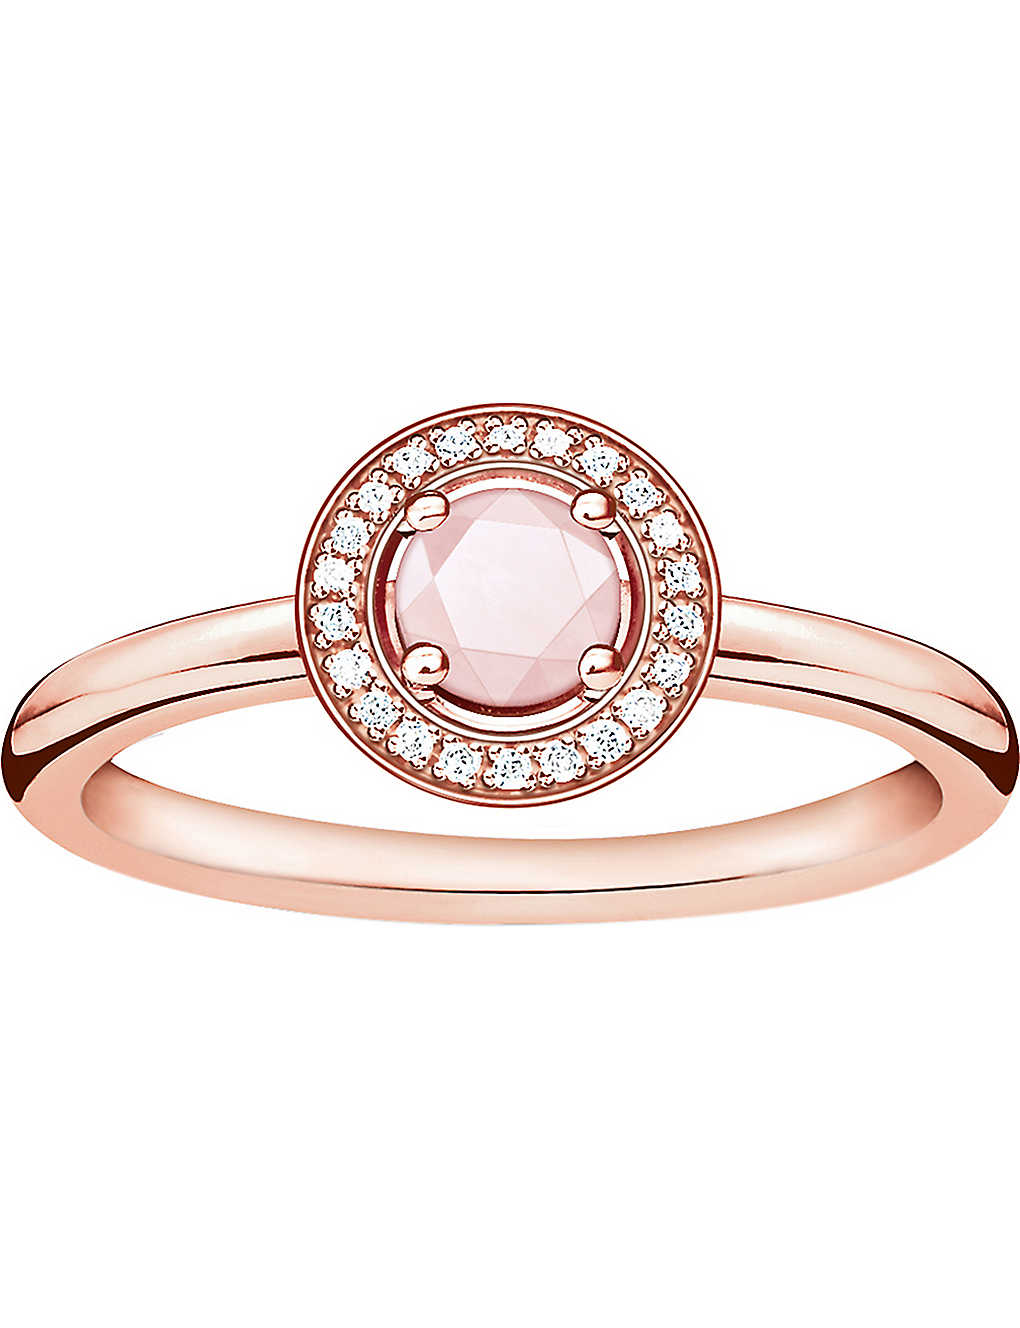 6a8b41586 THOMAS SABO - Glam & Soul 18ct rose gold-plated, rose quartz and ...